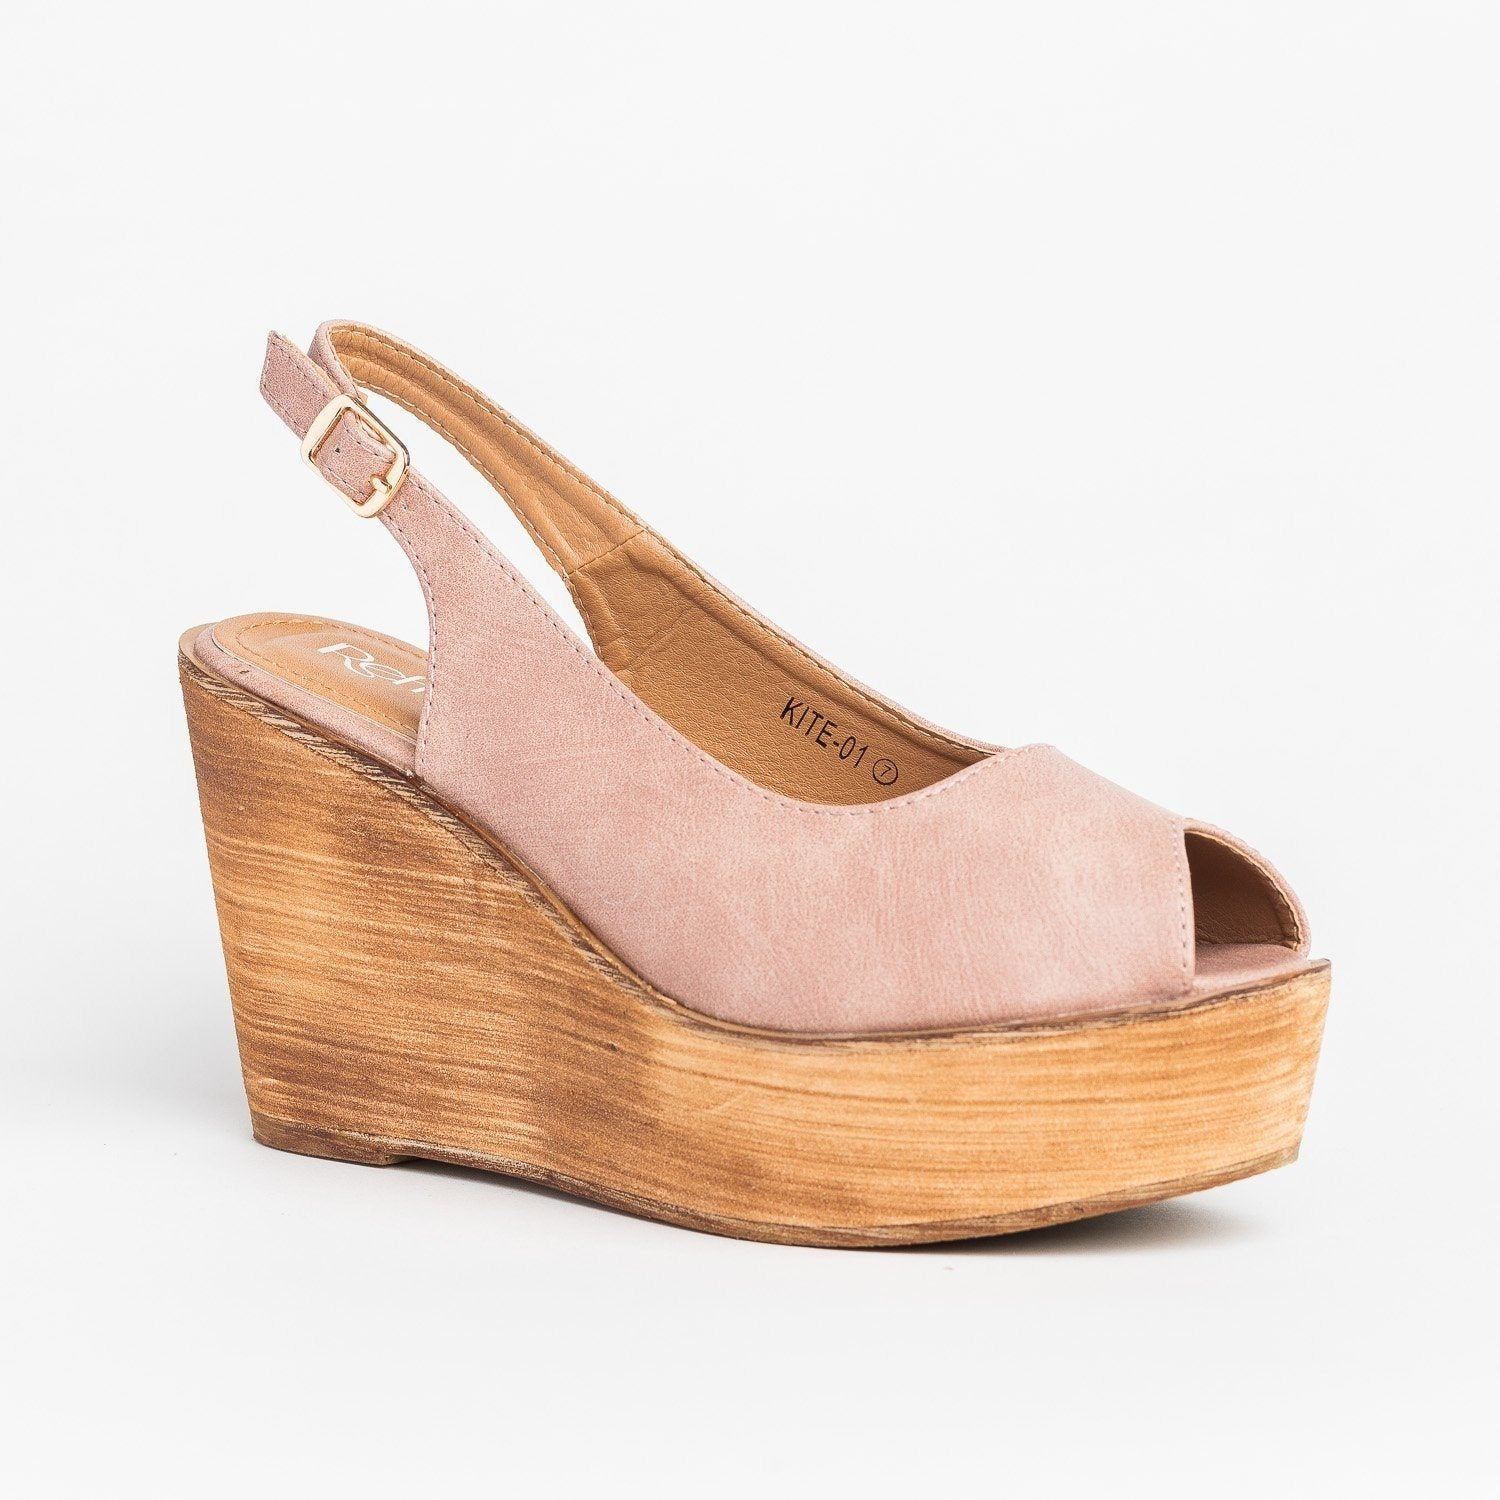 Wedges Peep Chic Refresh 01Shoetopia Platform Toe Wooden Shoes Kite zpUSMV